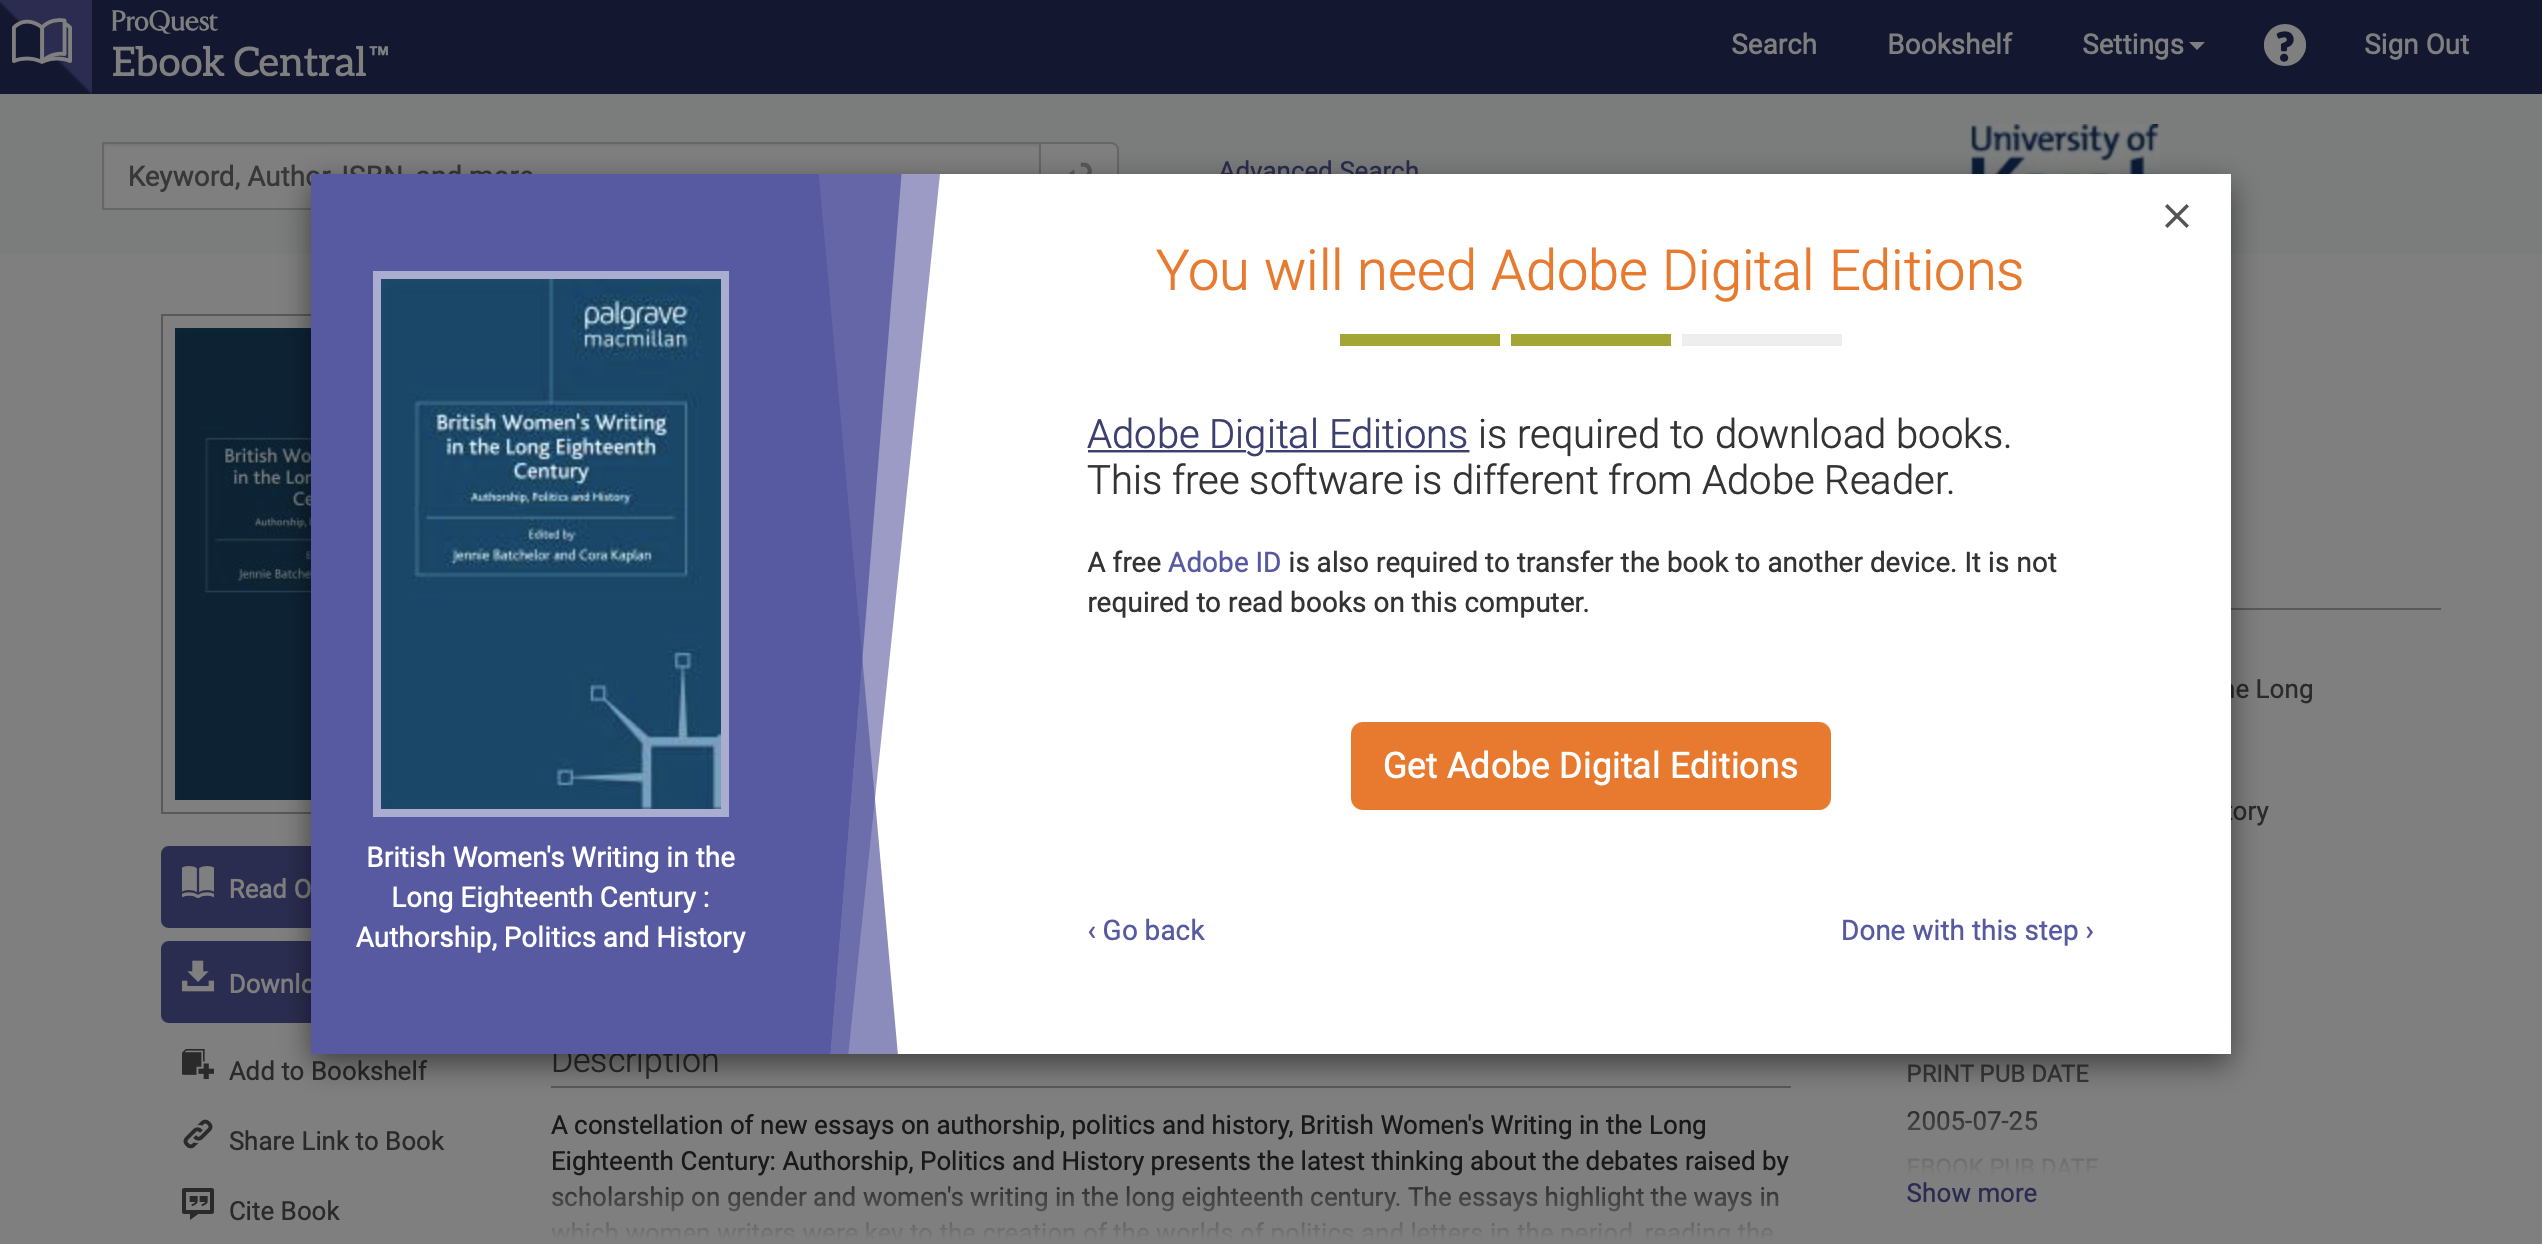 Screenshot of popup screen prompt for Adobe Digital Editions, the software needed to download some e-books in full